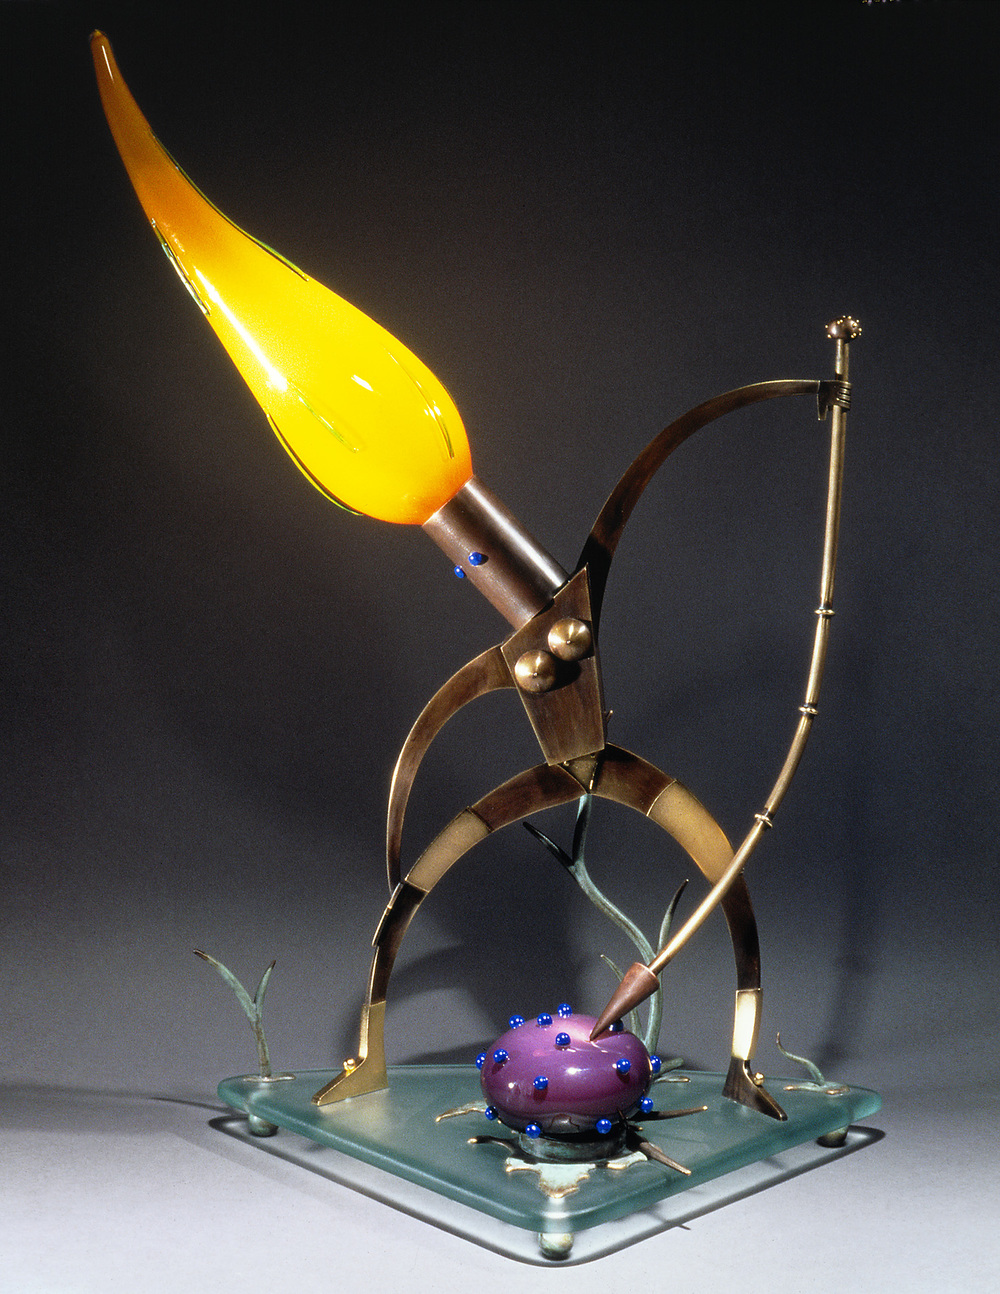 Huntress   1993. Blown glass, bronze, gold-plated bronze, plate glass. 34 x 24 x 15""